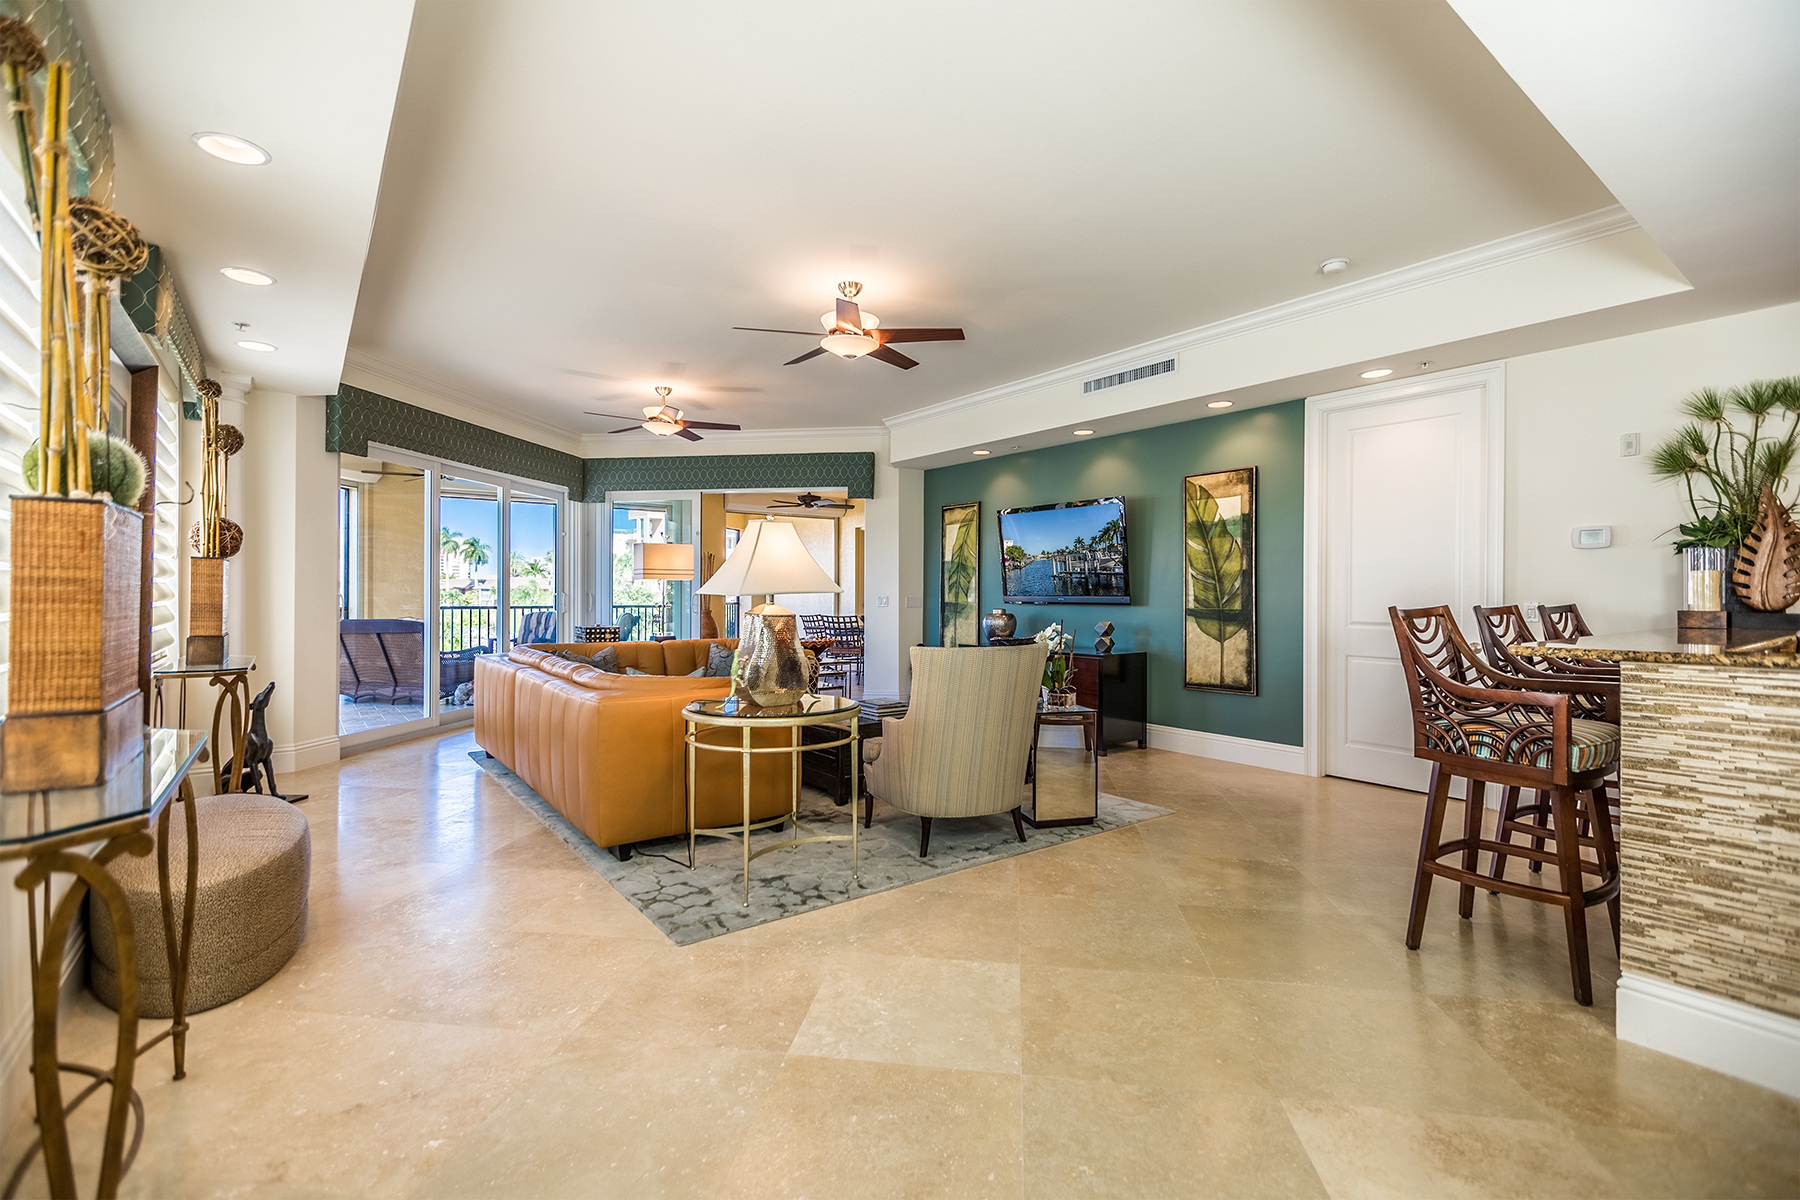 Condominium for Sale at MARCO ISLAND - MARINERS PALM HARBOR 908 Panama Ct 201, Marco Island, Florida 34145 United States